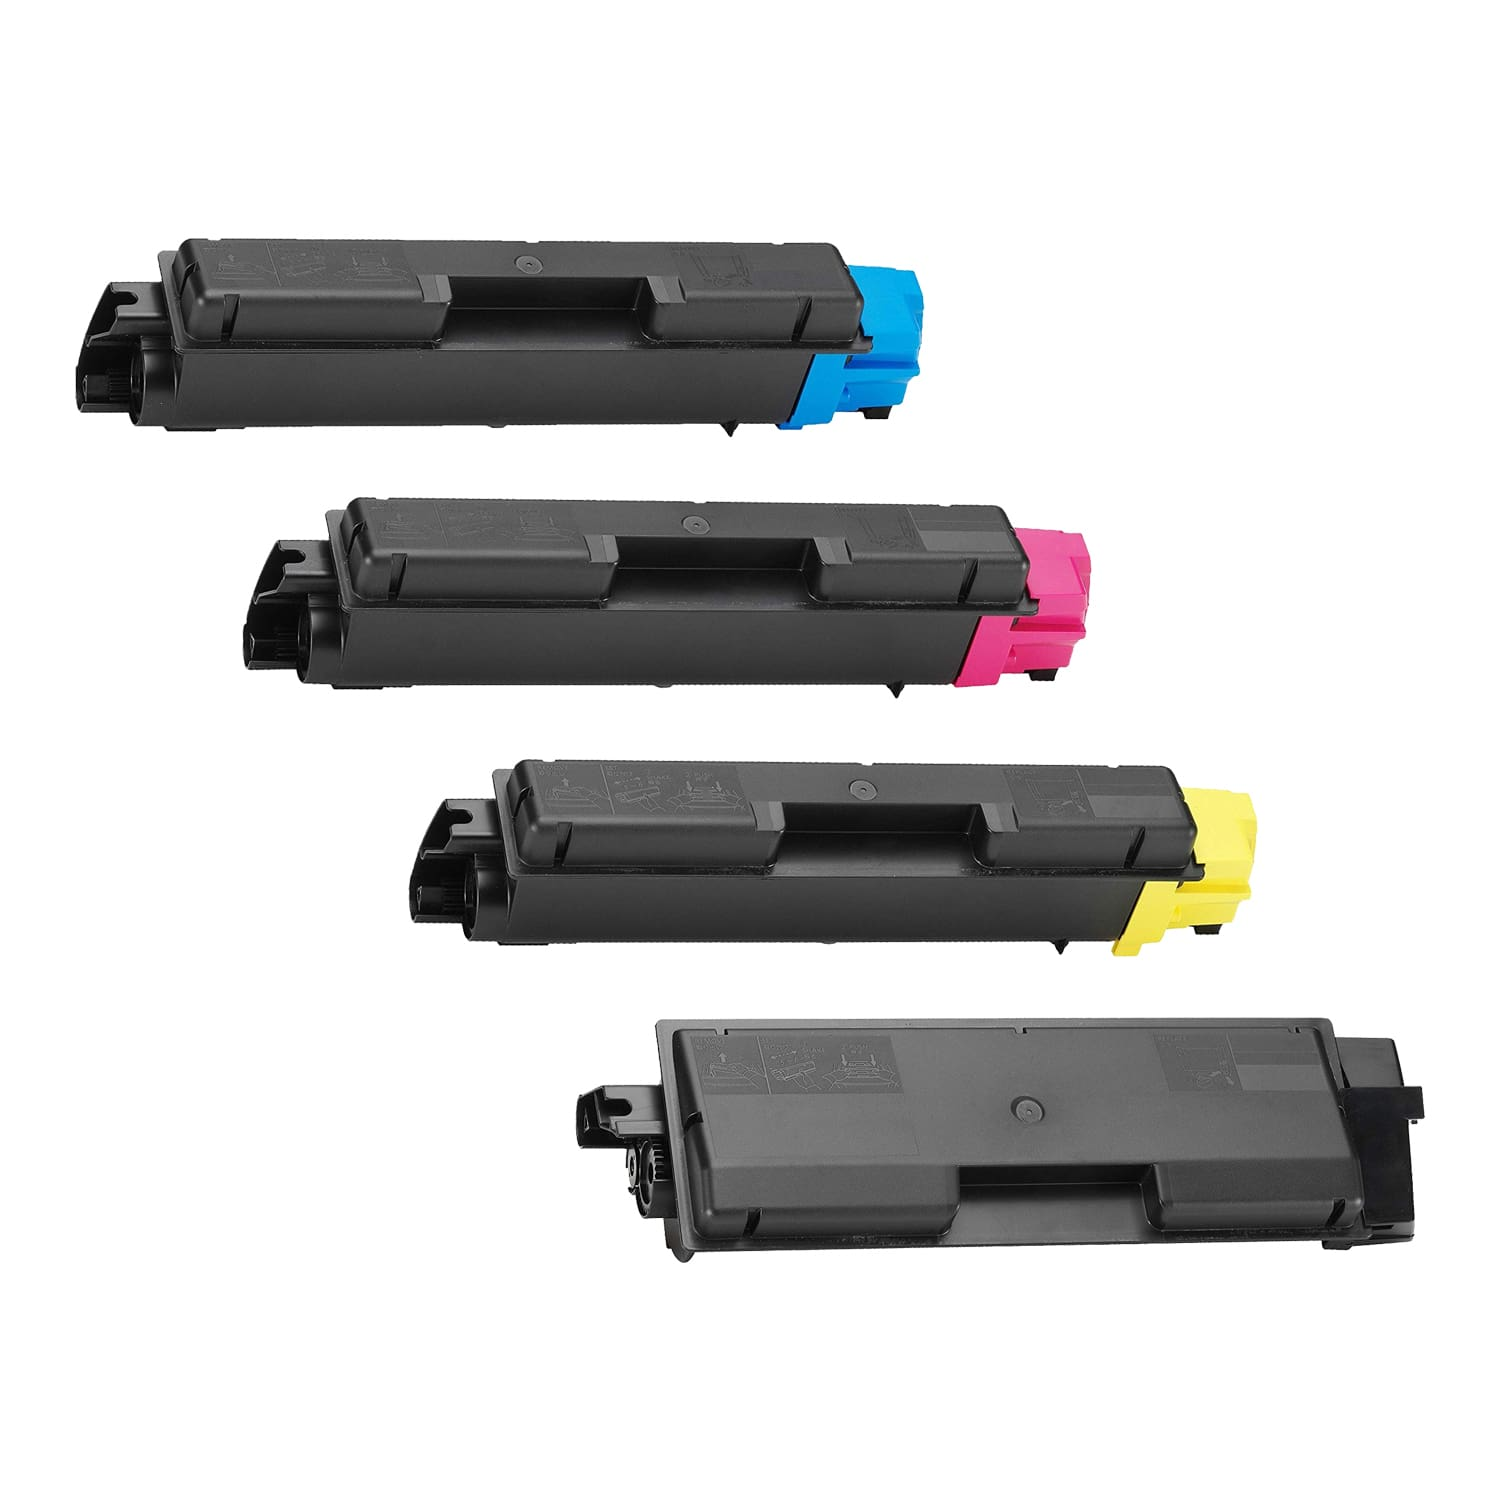 Compatible Kyocera Mita TK-582 Toner High Capacity Pack - 4 Cartridges